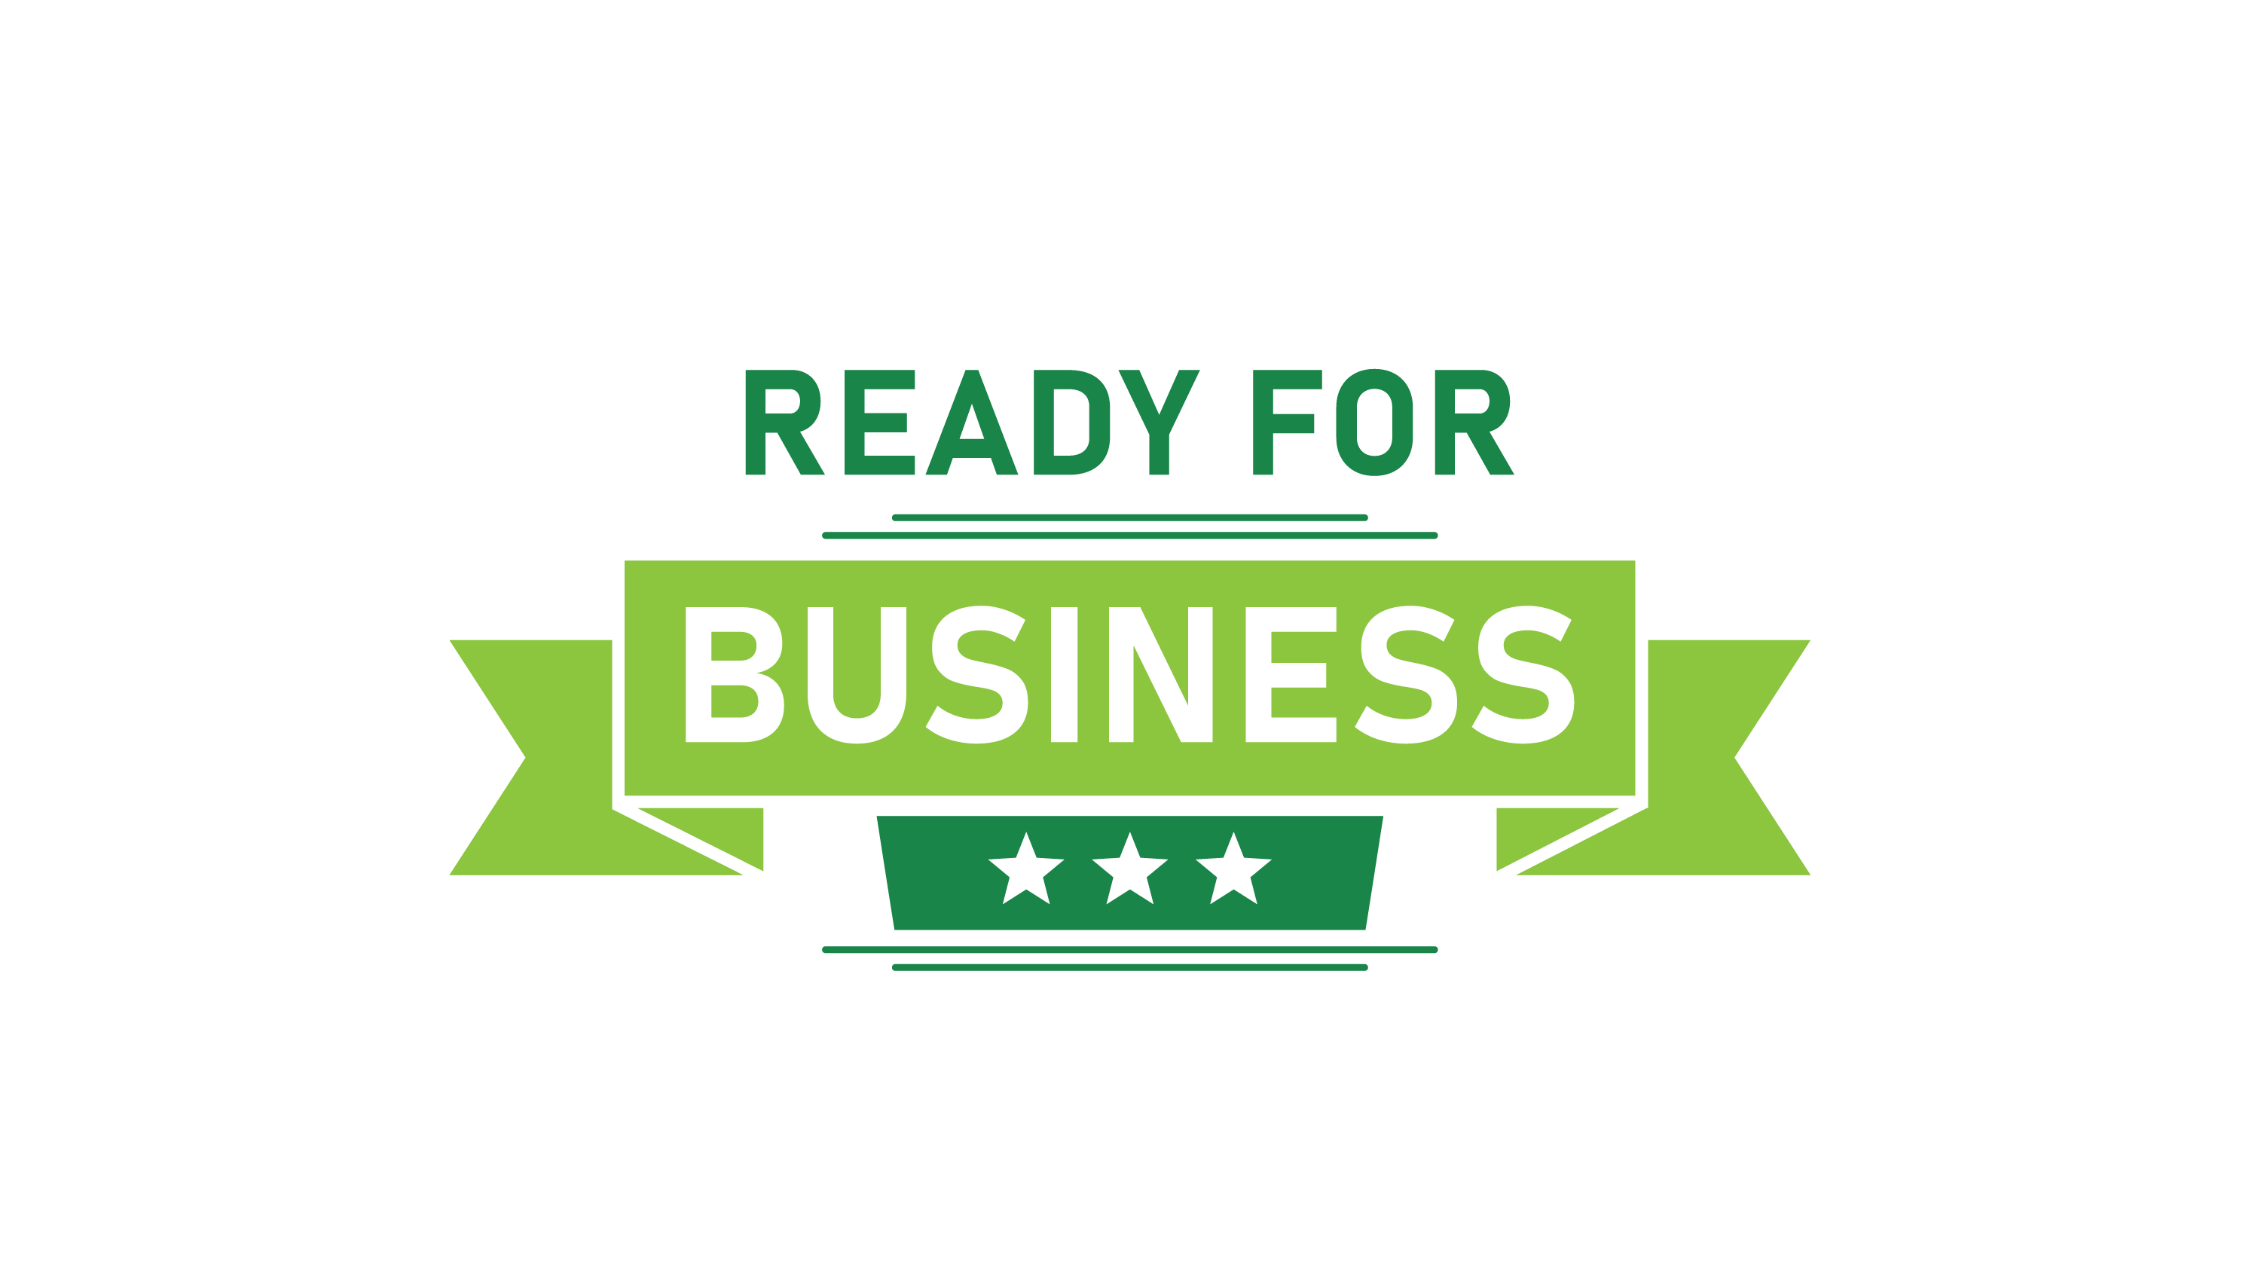 Ready for business logo